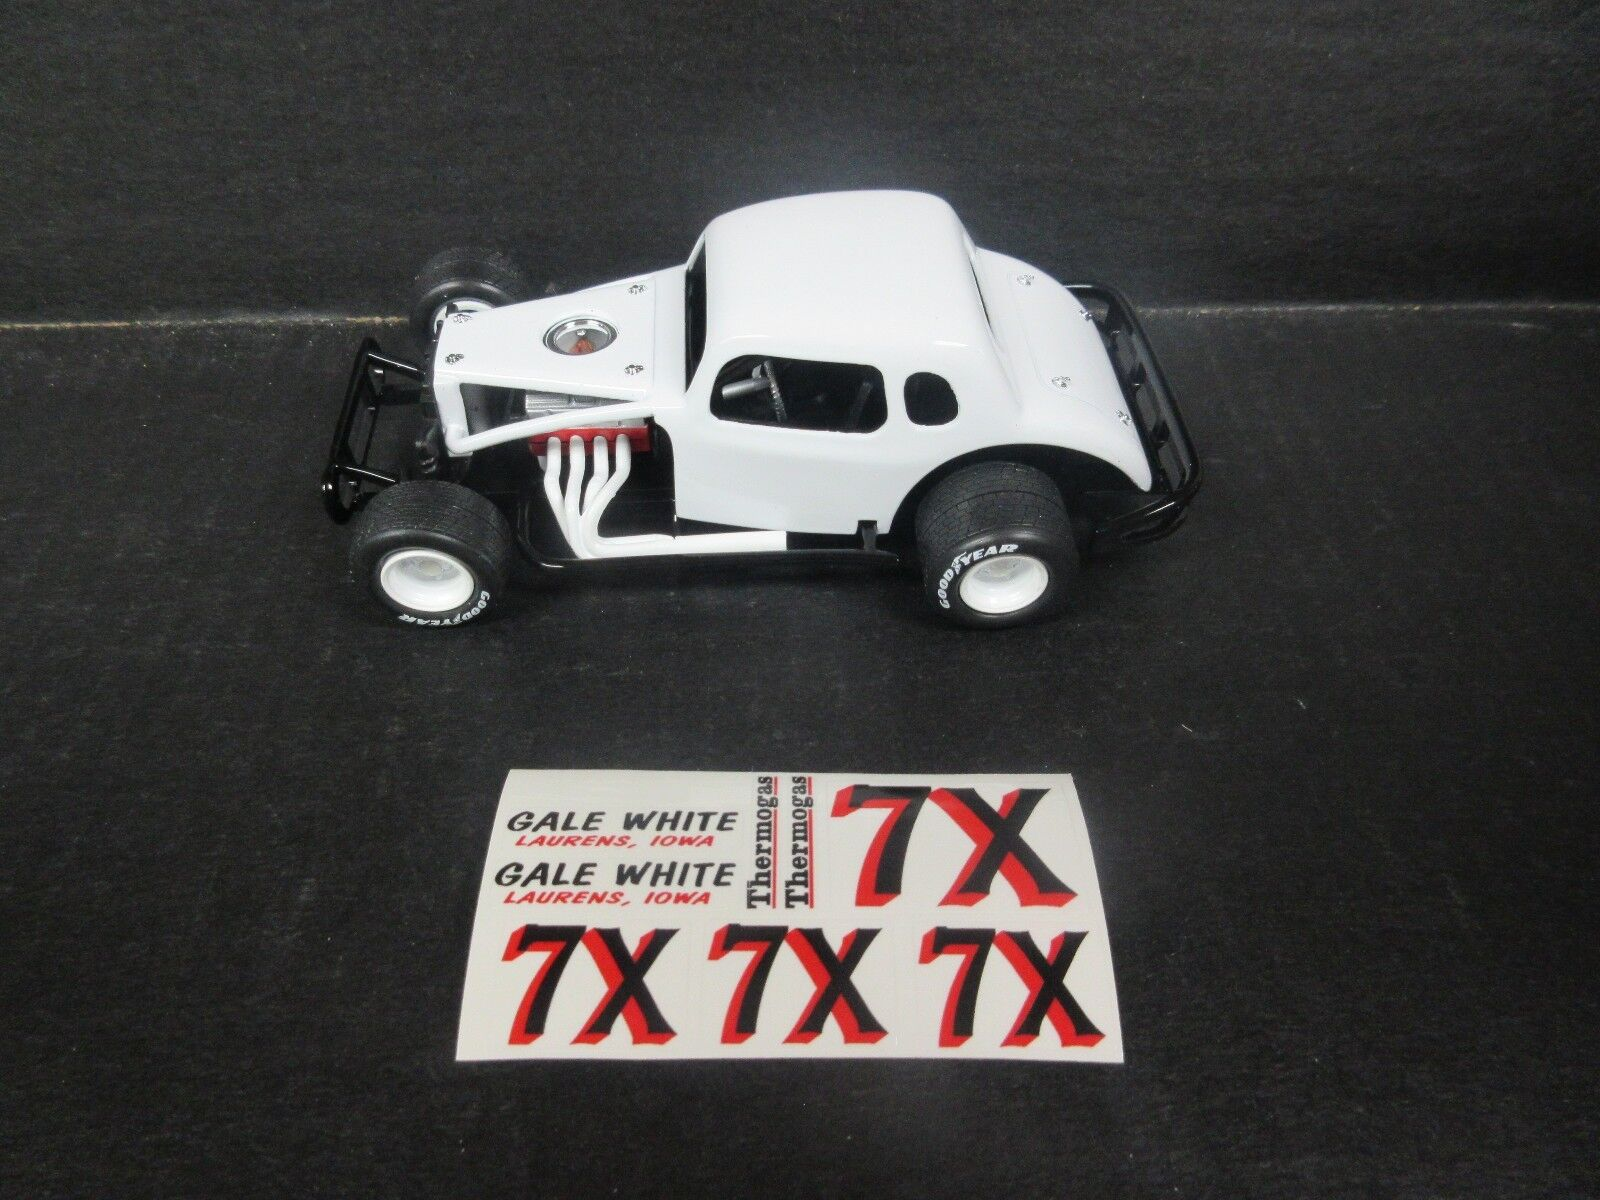 X Gale White Modified 1 25th scale Die-Cast donor kit